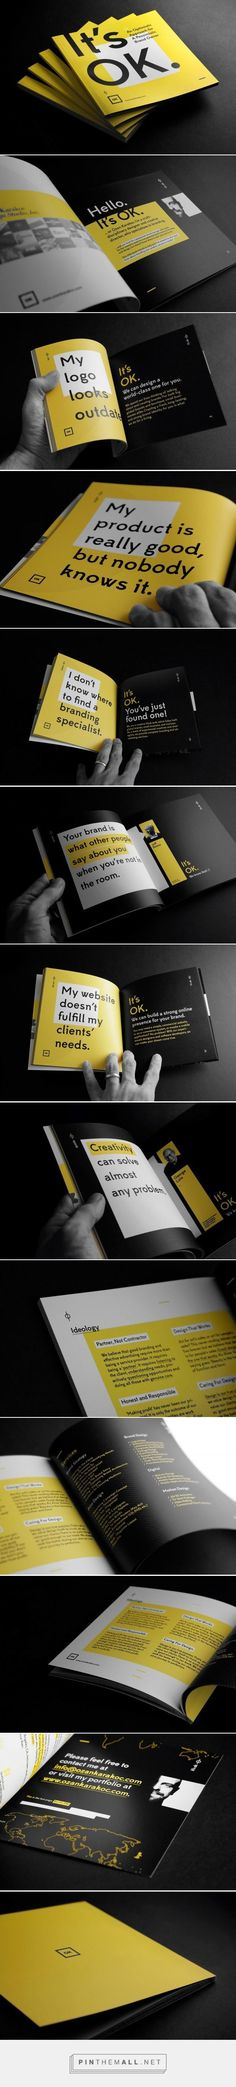 29 Best Ideas For Design Layout Booklet Graphics Graphisches Design, Buch Design, Logo Design, Game Design, Layout Design, Print Design, Portfolio Design, Mise En Page Portfolio, Editorial Design Layouts